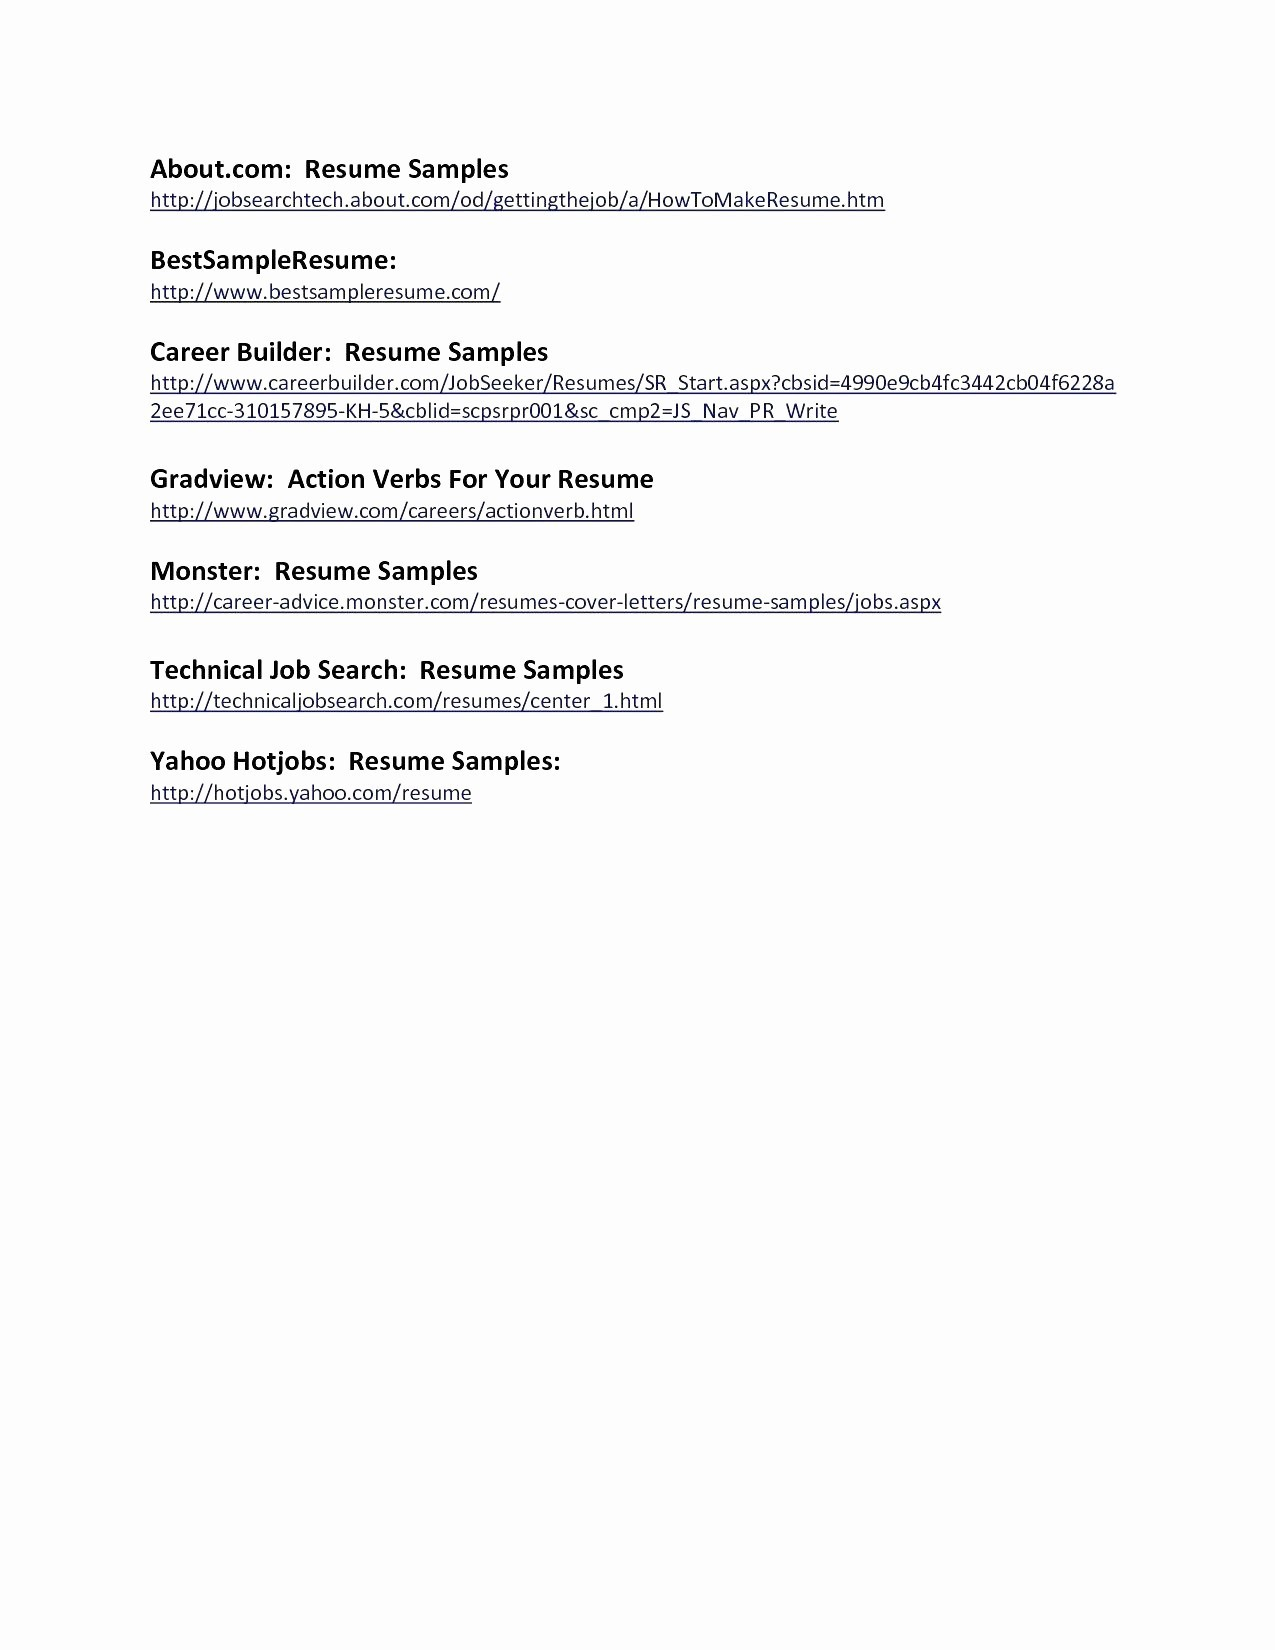 Business Resume Examples 2018 - social Work Resume Examples Unique Fresh Free Resume Examples Fresh